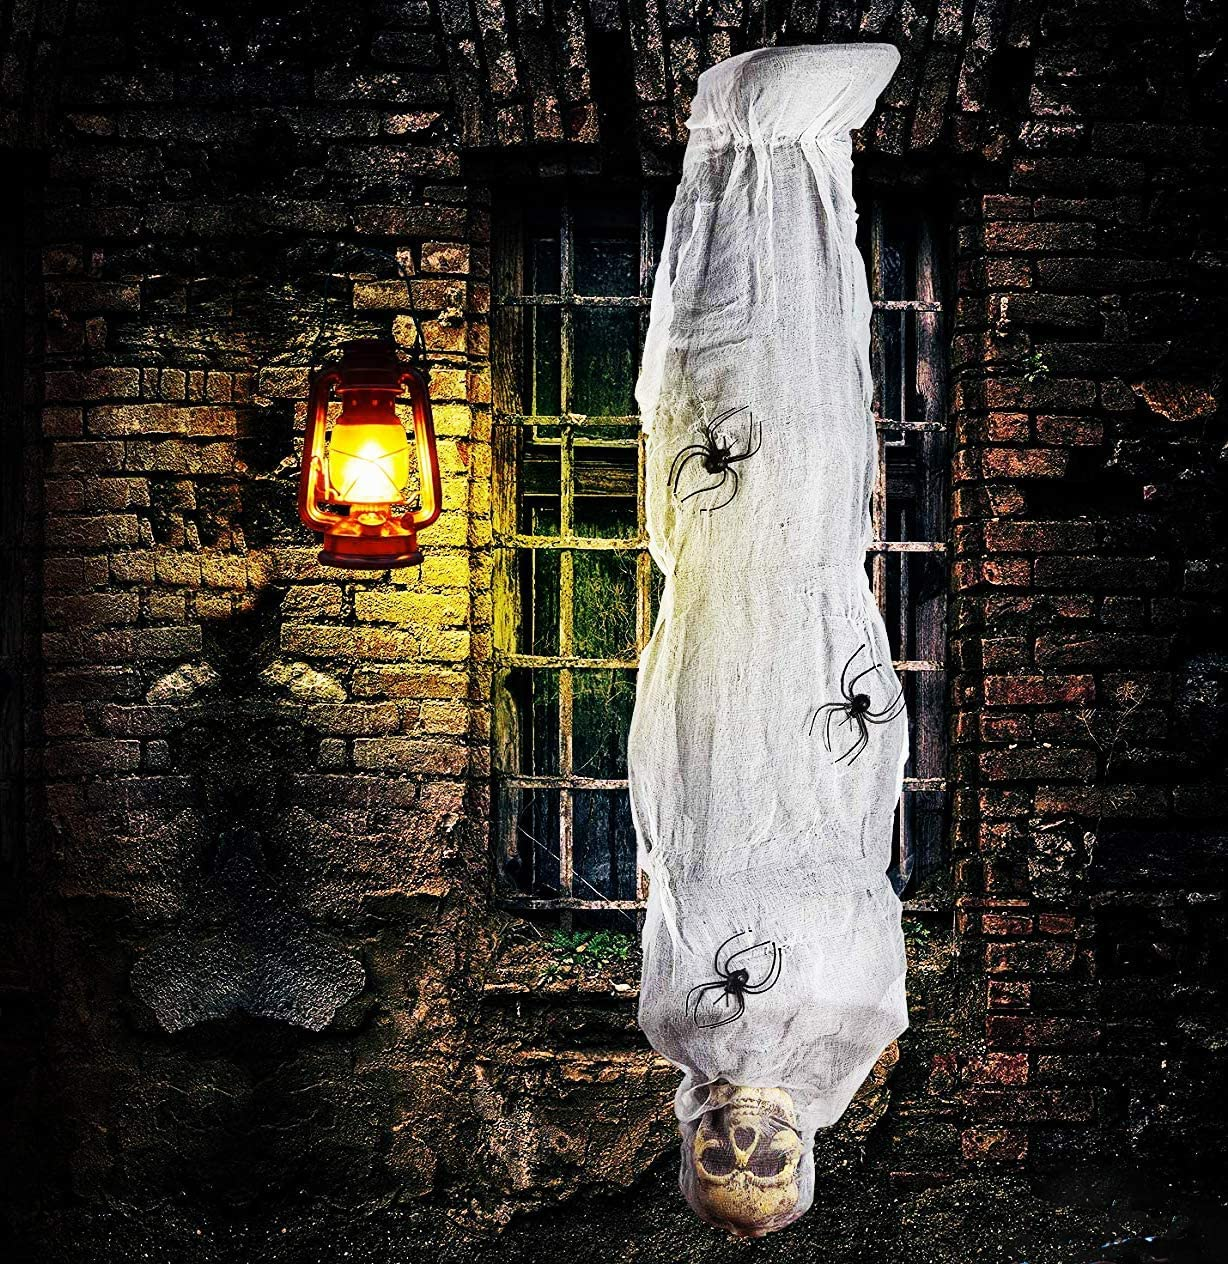 4E's Novelty Hanging Cocoon Corpse Prop | Halloween Scary Decorations Outdoor | 60 Inch/5 Ft Scary Hanging Skeleton Mummy with Spider, Flexible - for Haunted House, Yard Decor, Graveyard Scene